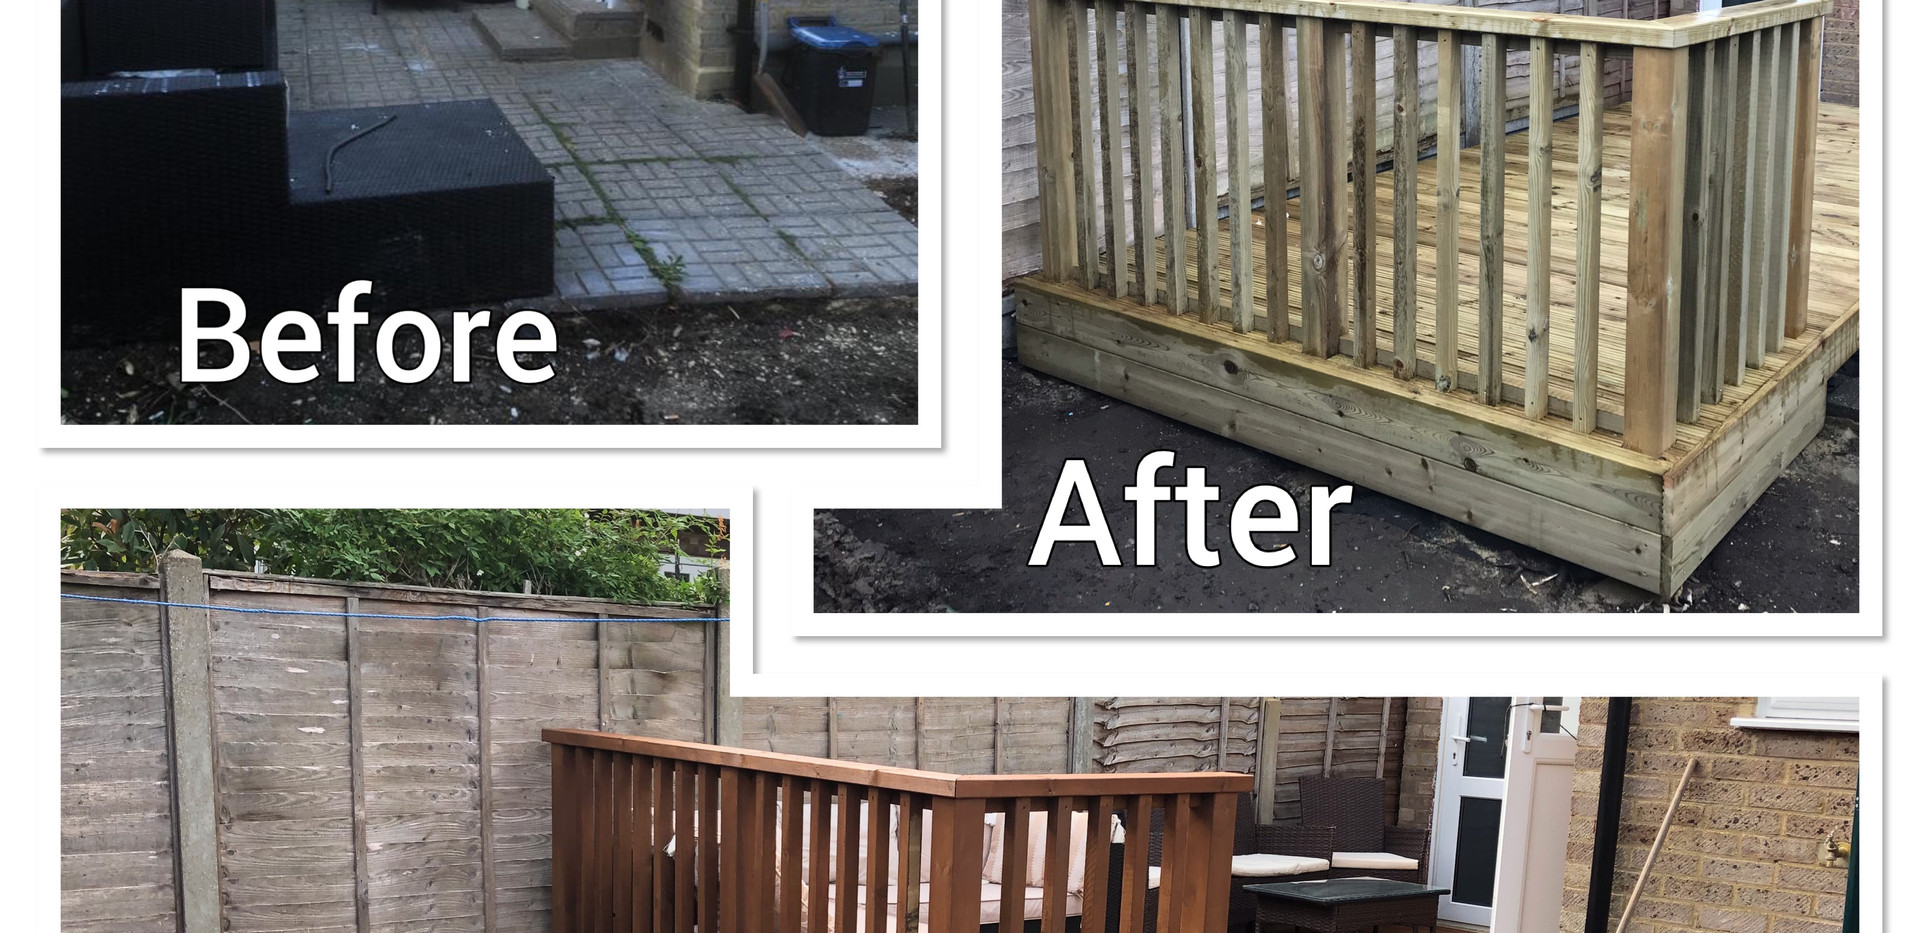 Sun deck - before & after